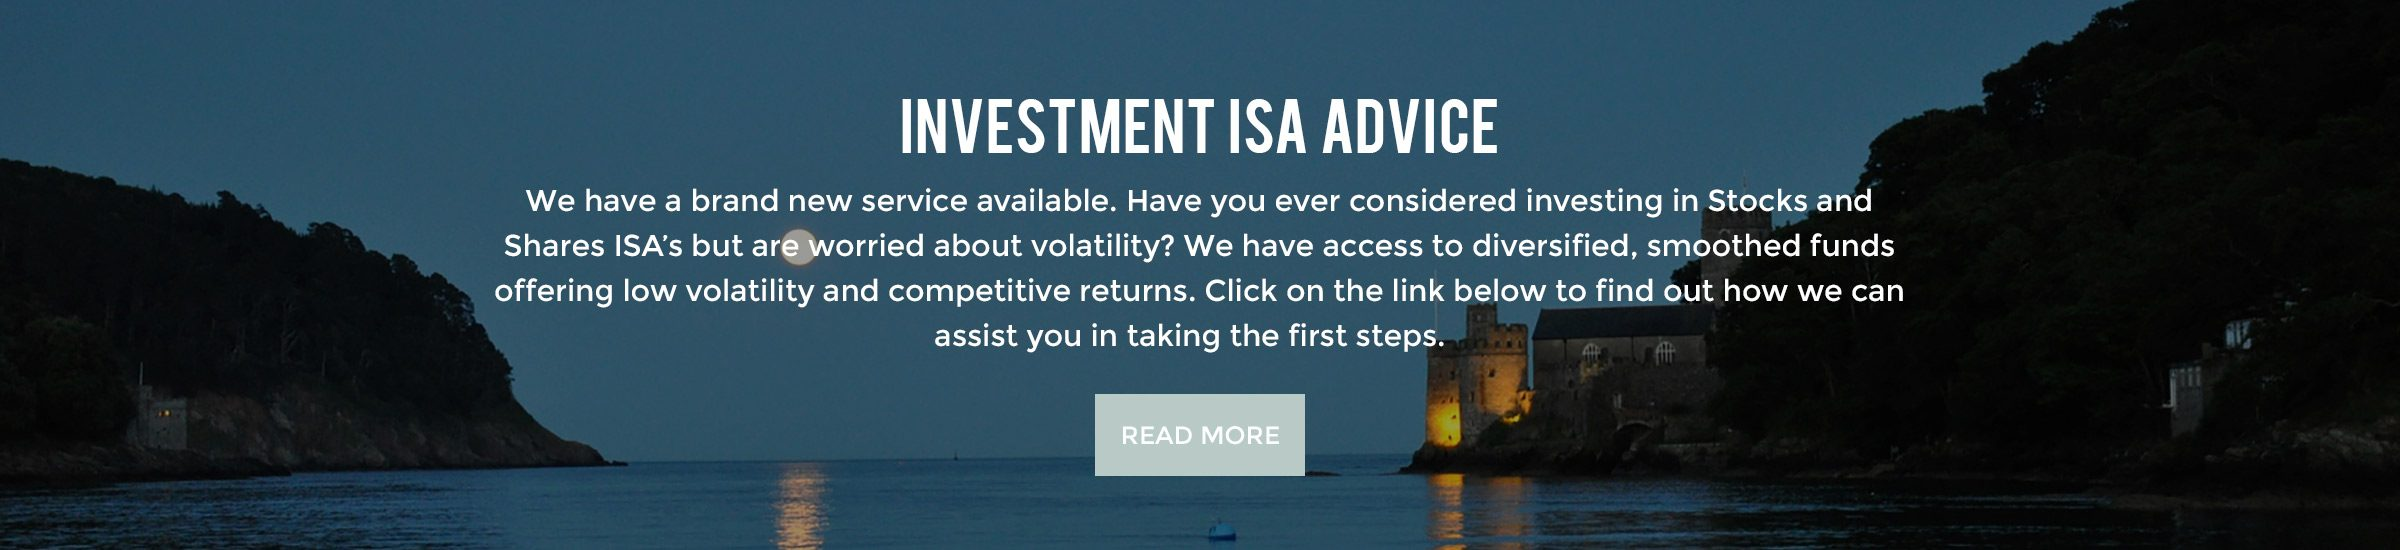 investment isa